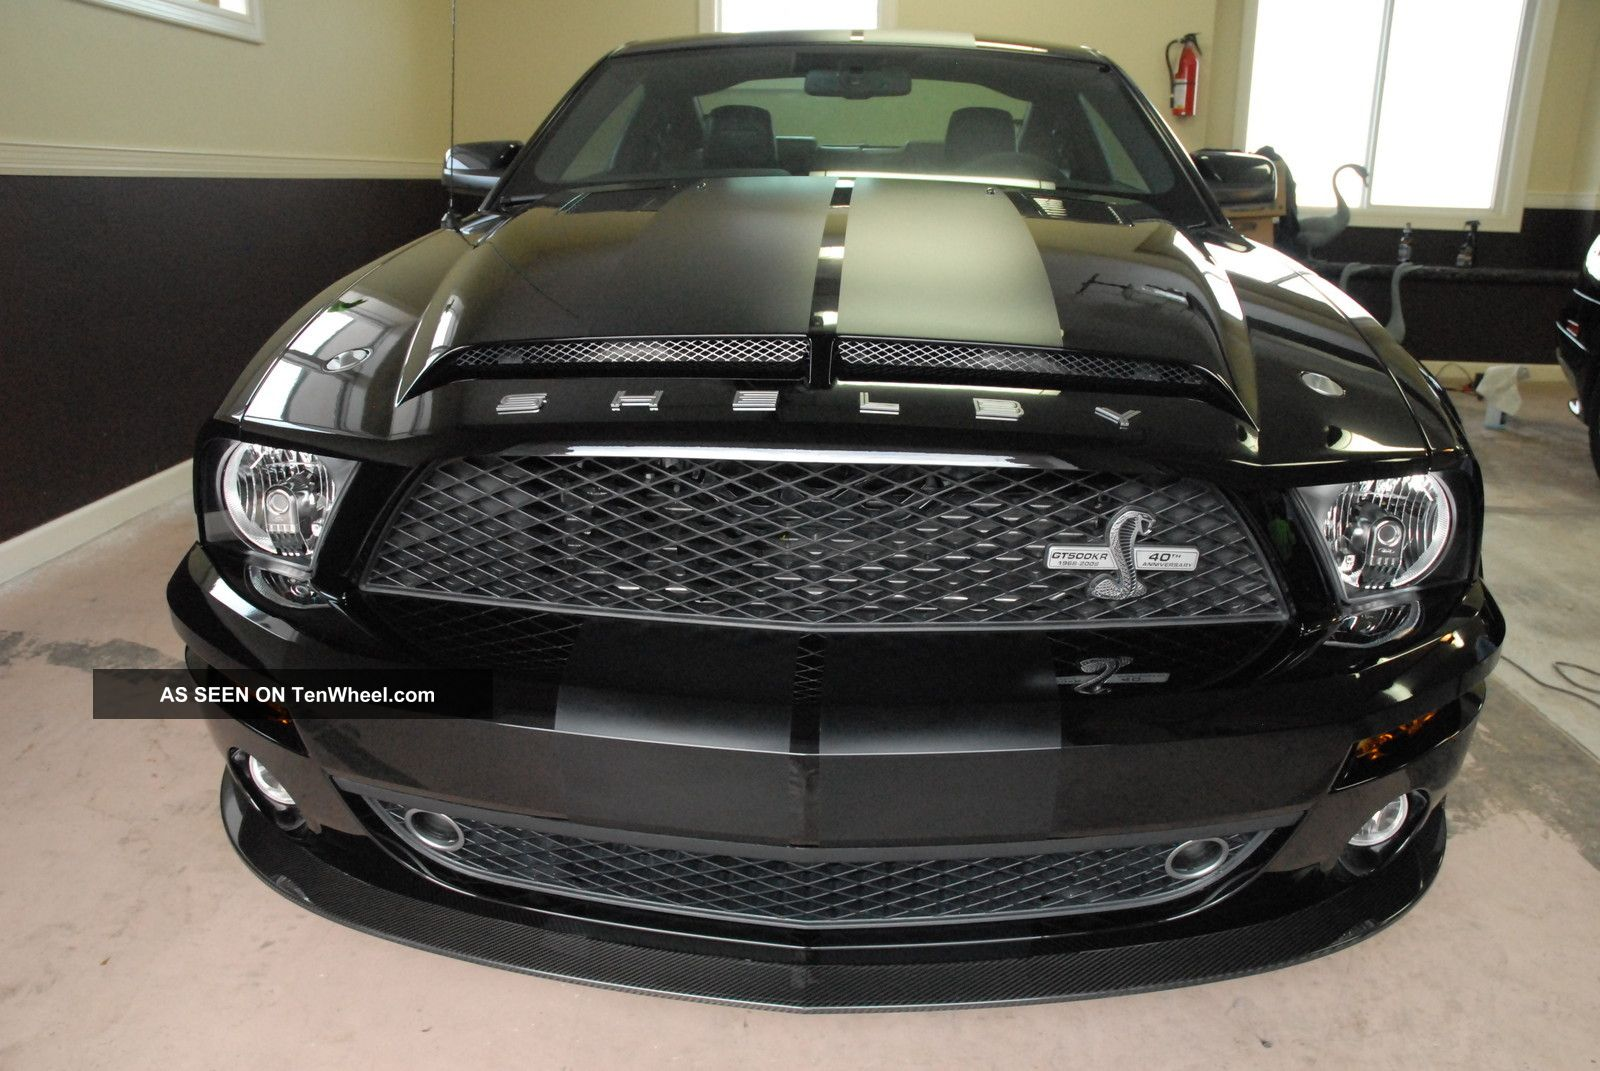 2008 ford mustang shelby gt 500 kr coupe 1 1000 limited. Black Bedroom Furniture Sets. Home Design Ideas